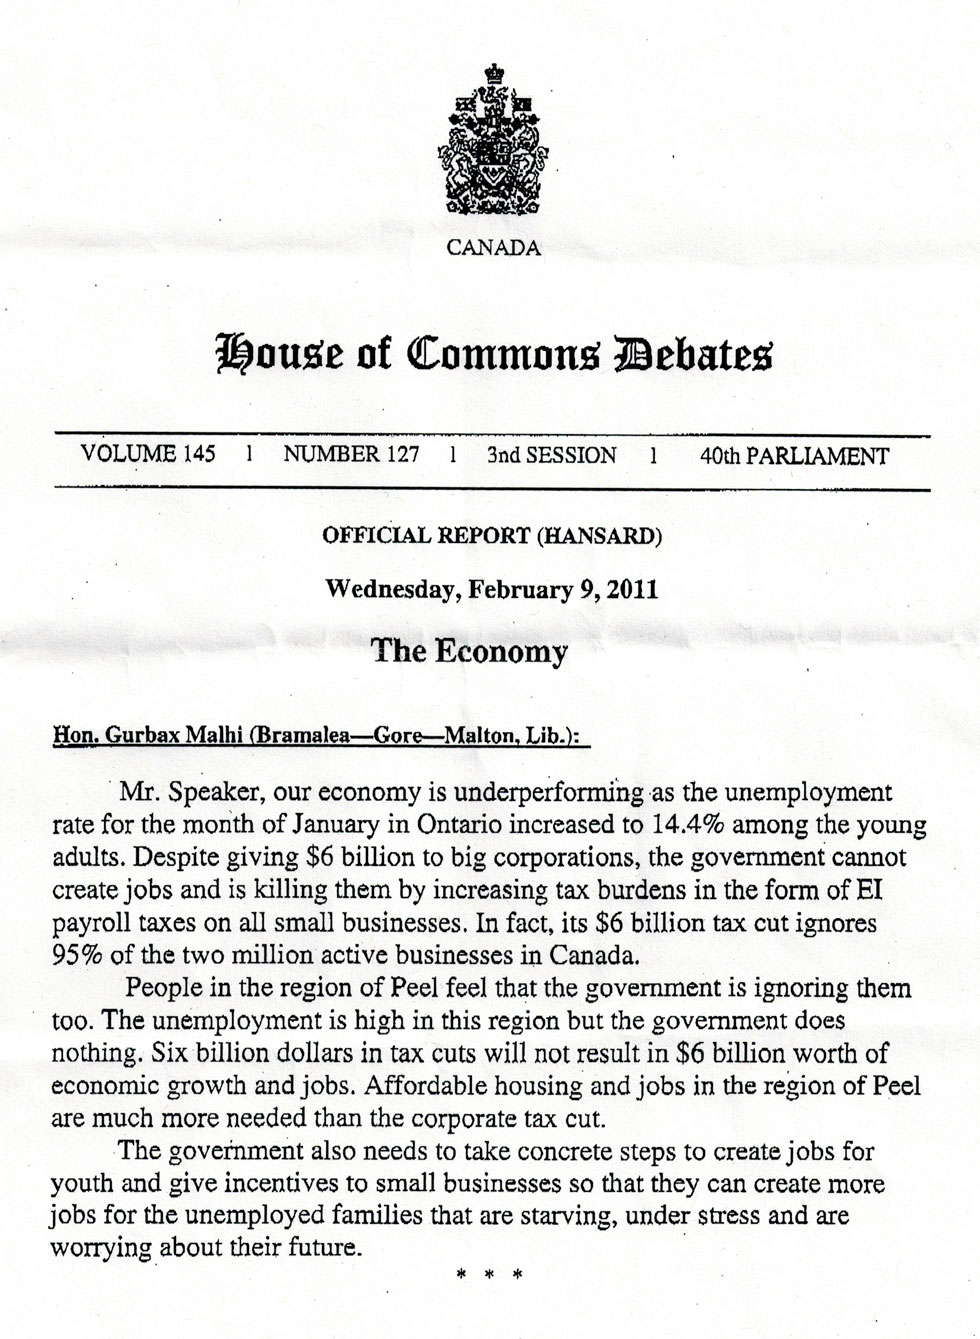 The Economy Speech